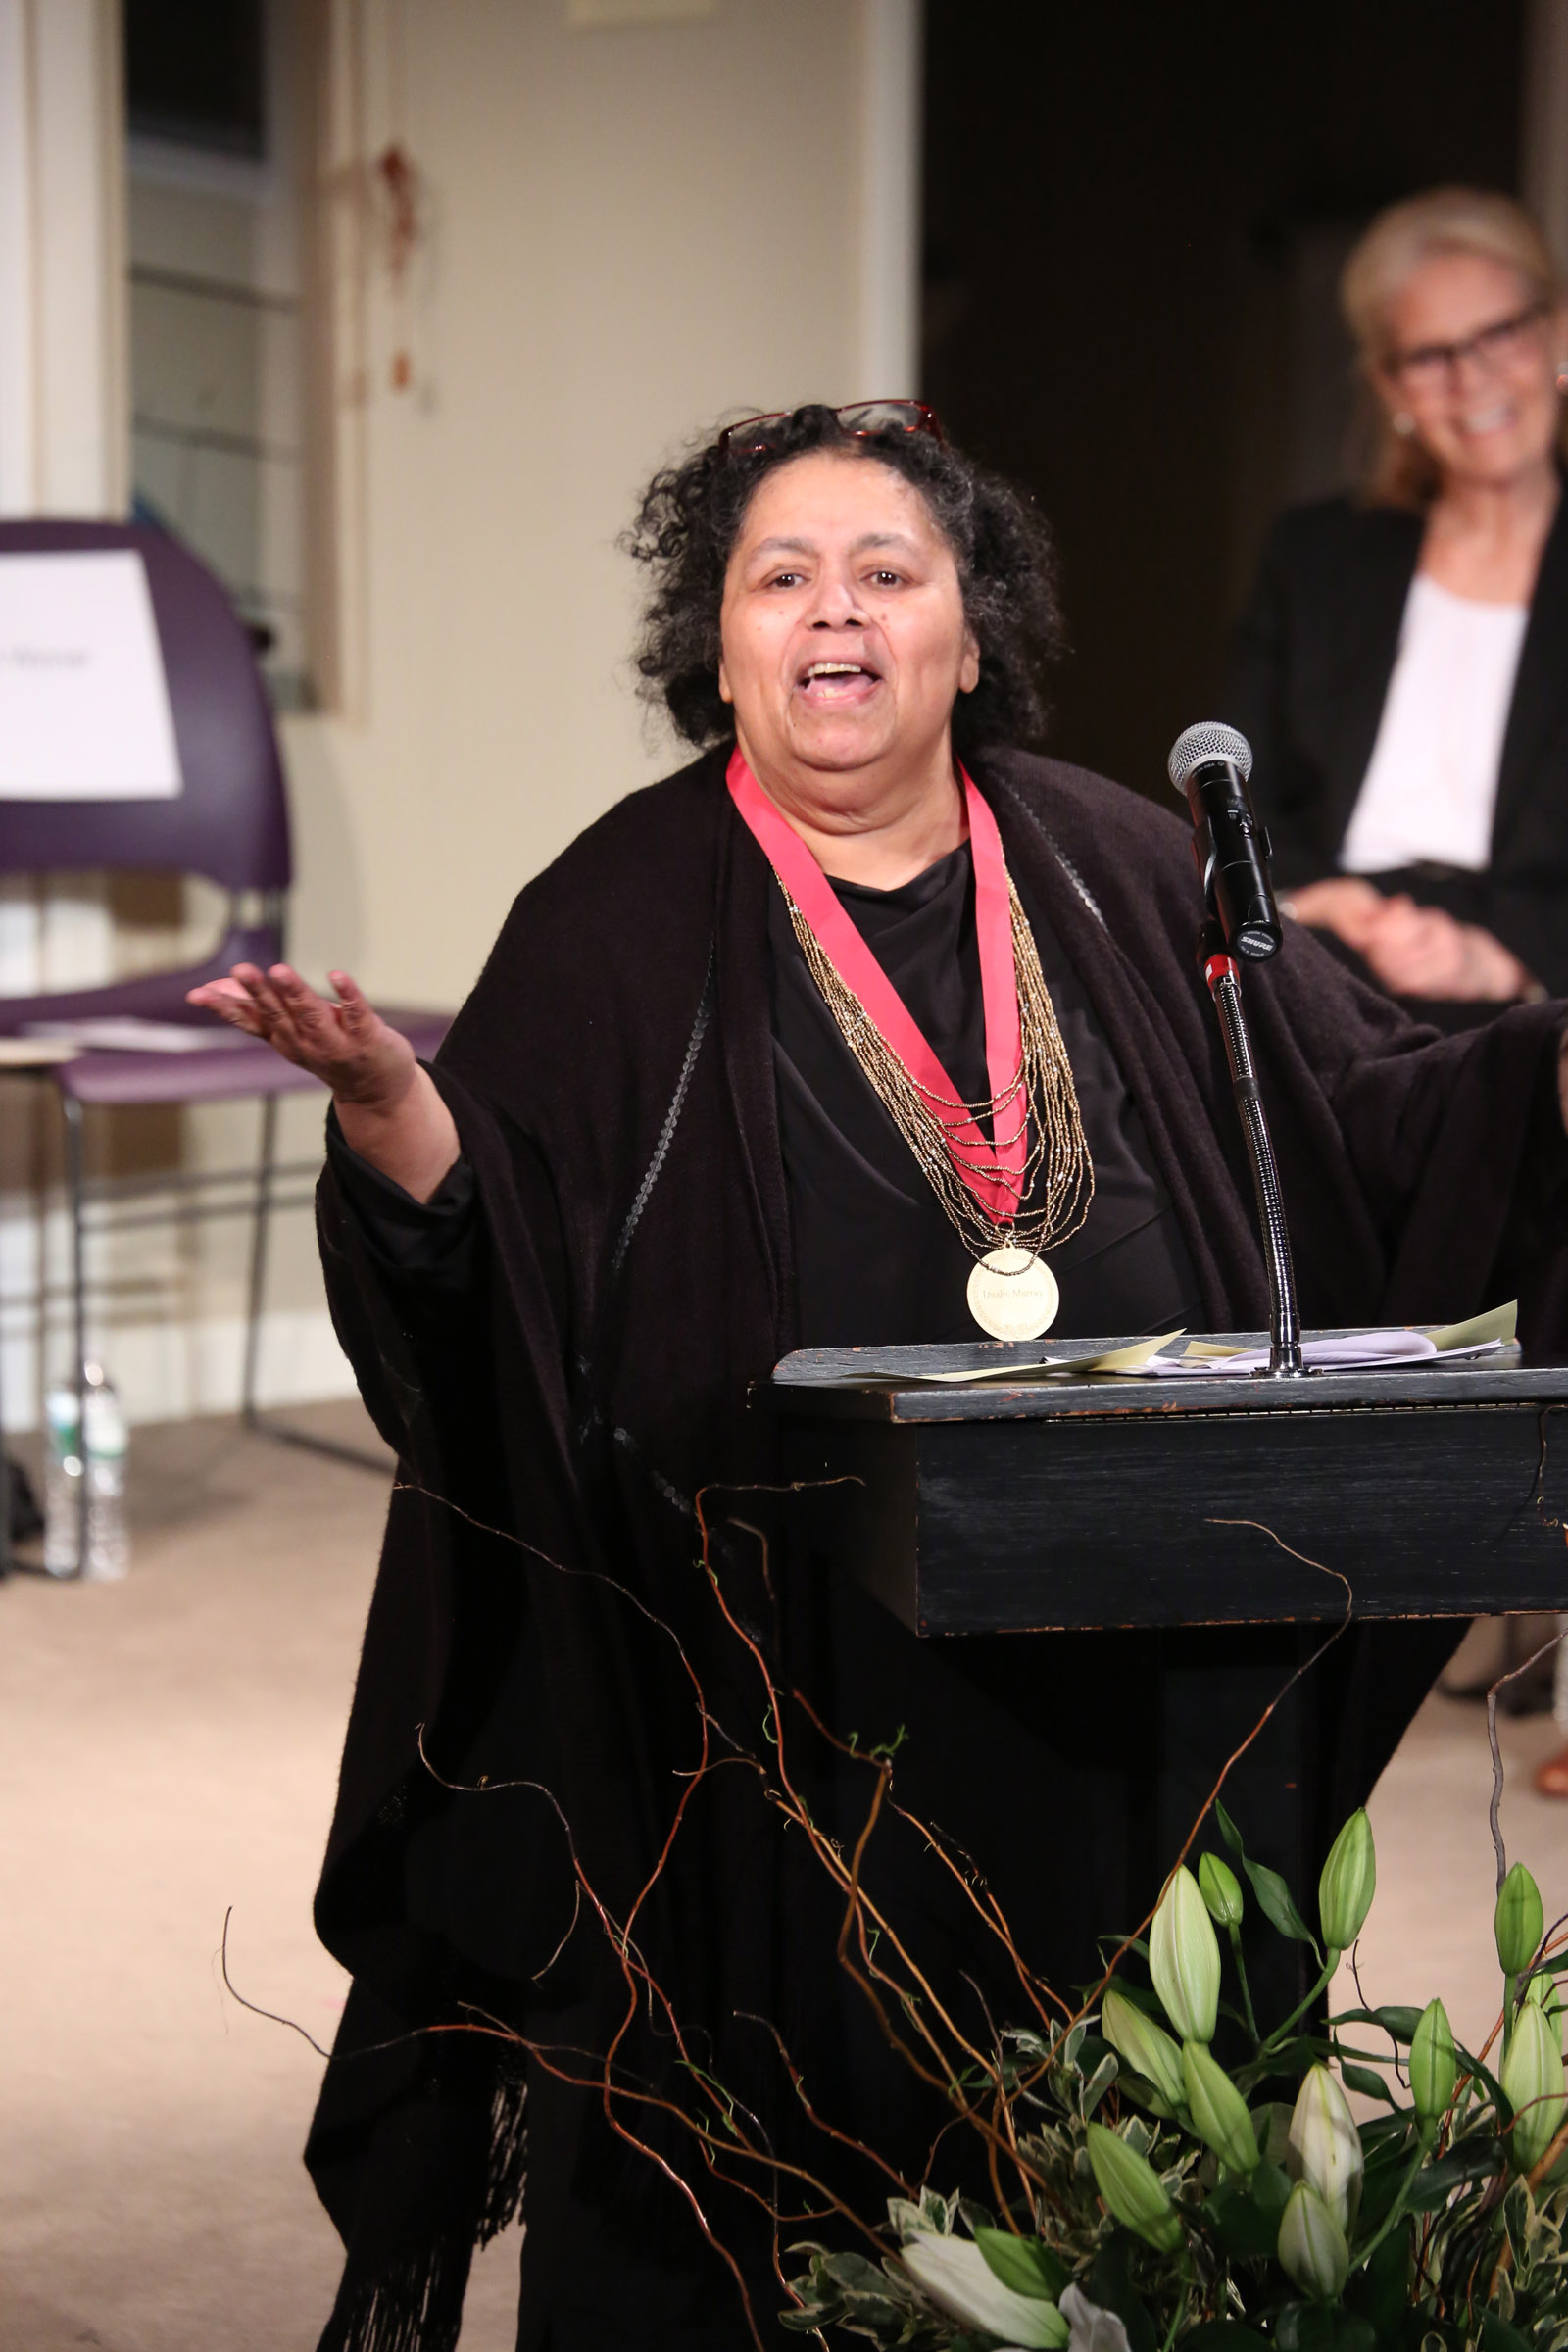 2015 LILLY AWARDS Photo 5 Diedre Murray. Photo by Walter McBride.jpg